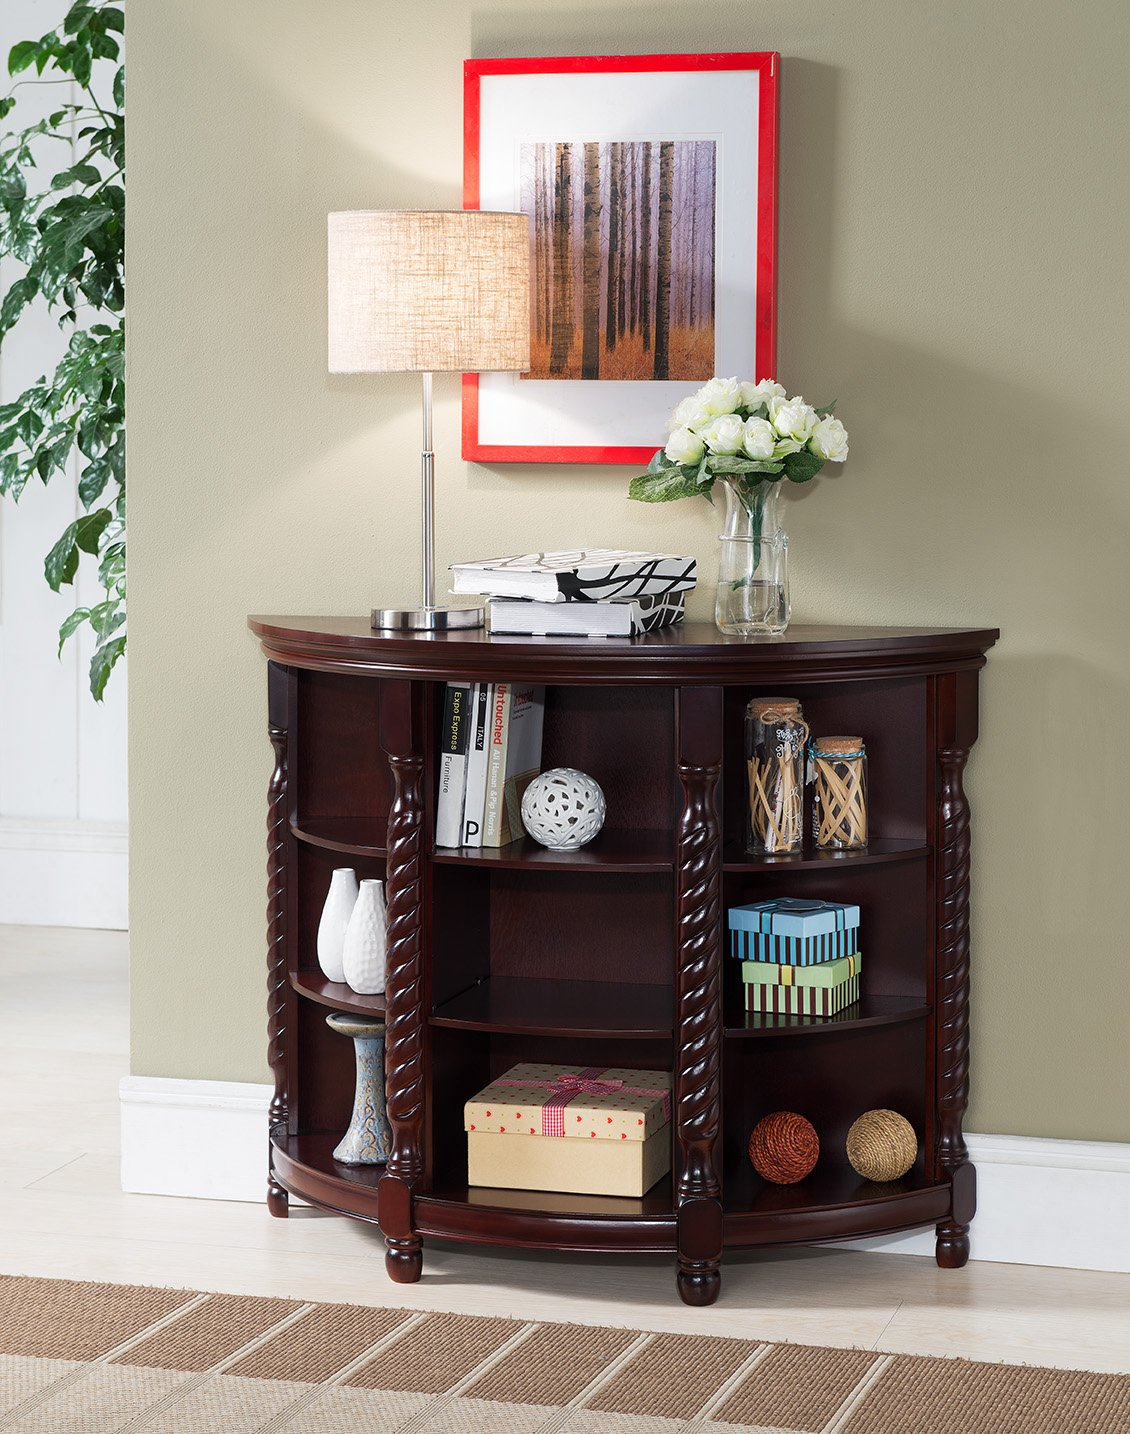 Kings Brand Furniture Wood Entryway Buffet Console Sofa Table, Cherry by Kings Brand Furniture